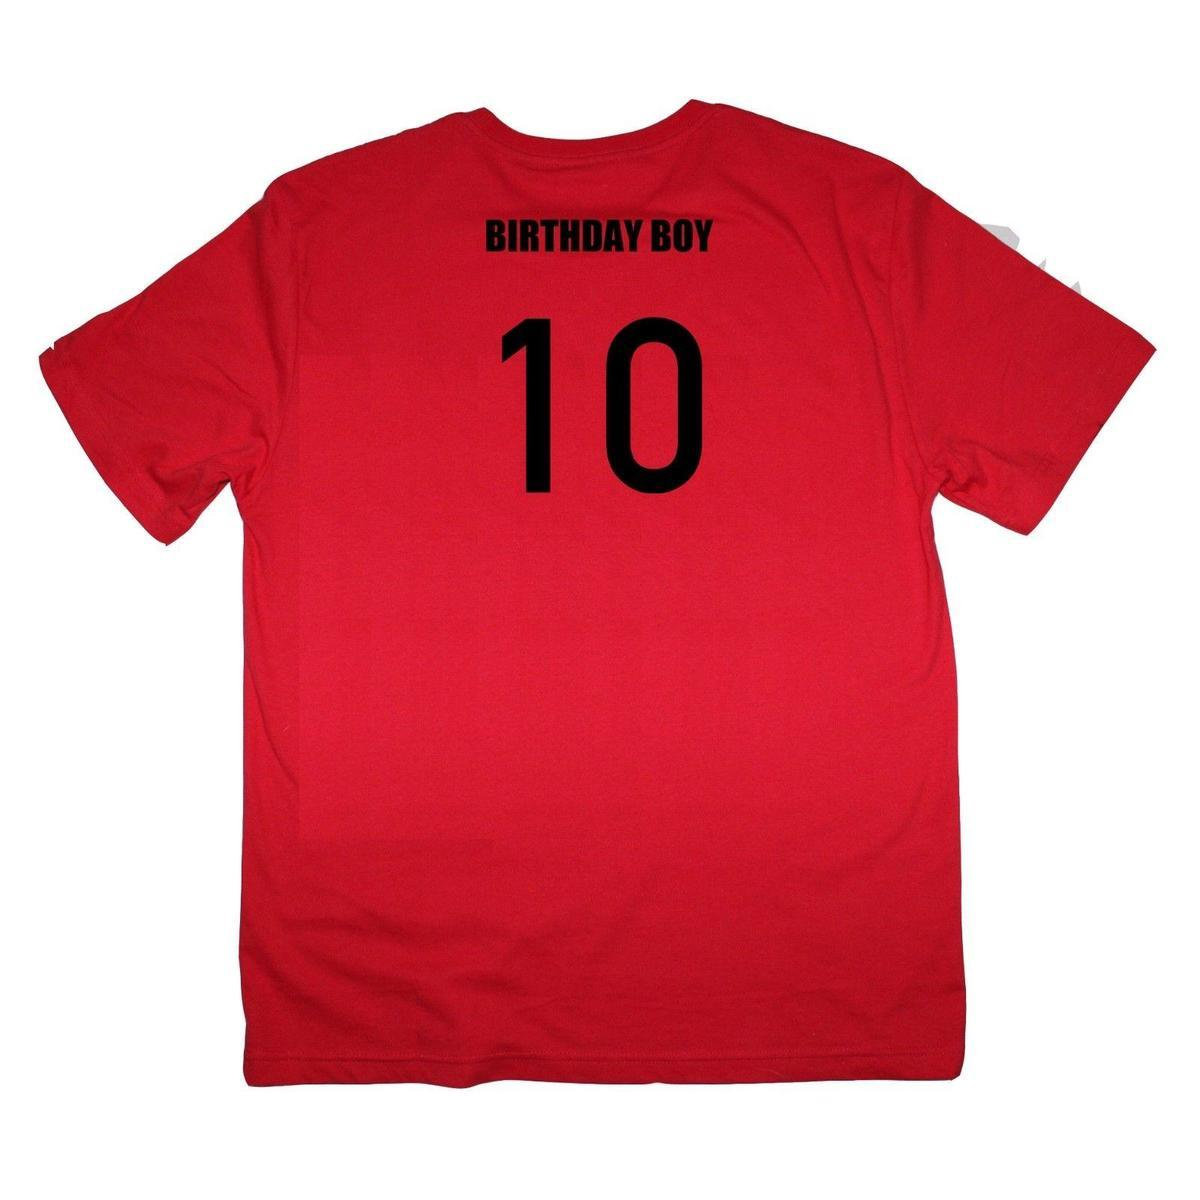 Birthday Boy 10th Tenth Ten 10 Year Old Male Baby Shirt Many Colours Cool Tshirts Retro T Shirts From Lijian046 1208